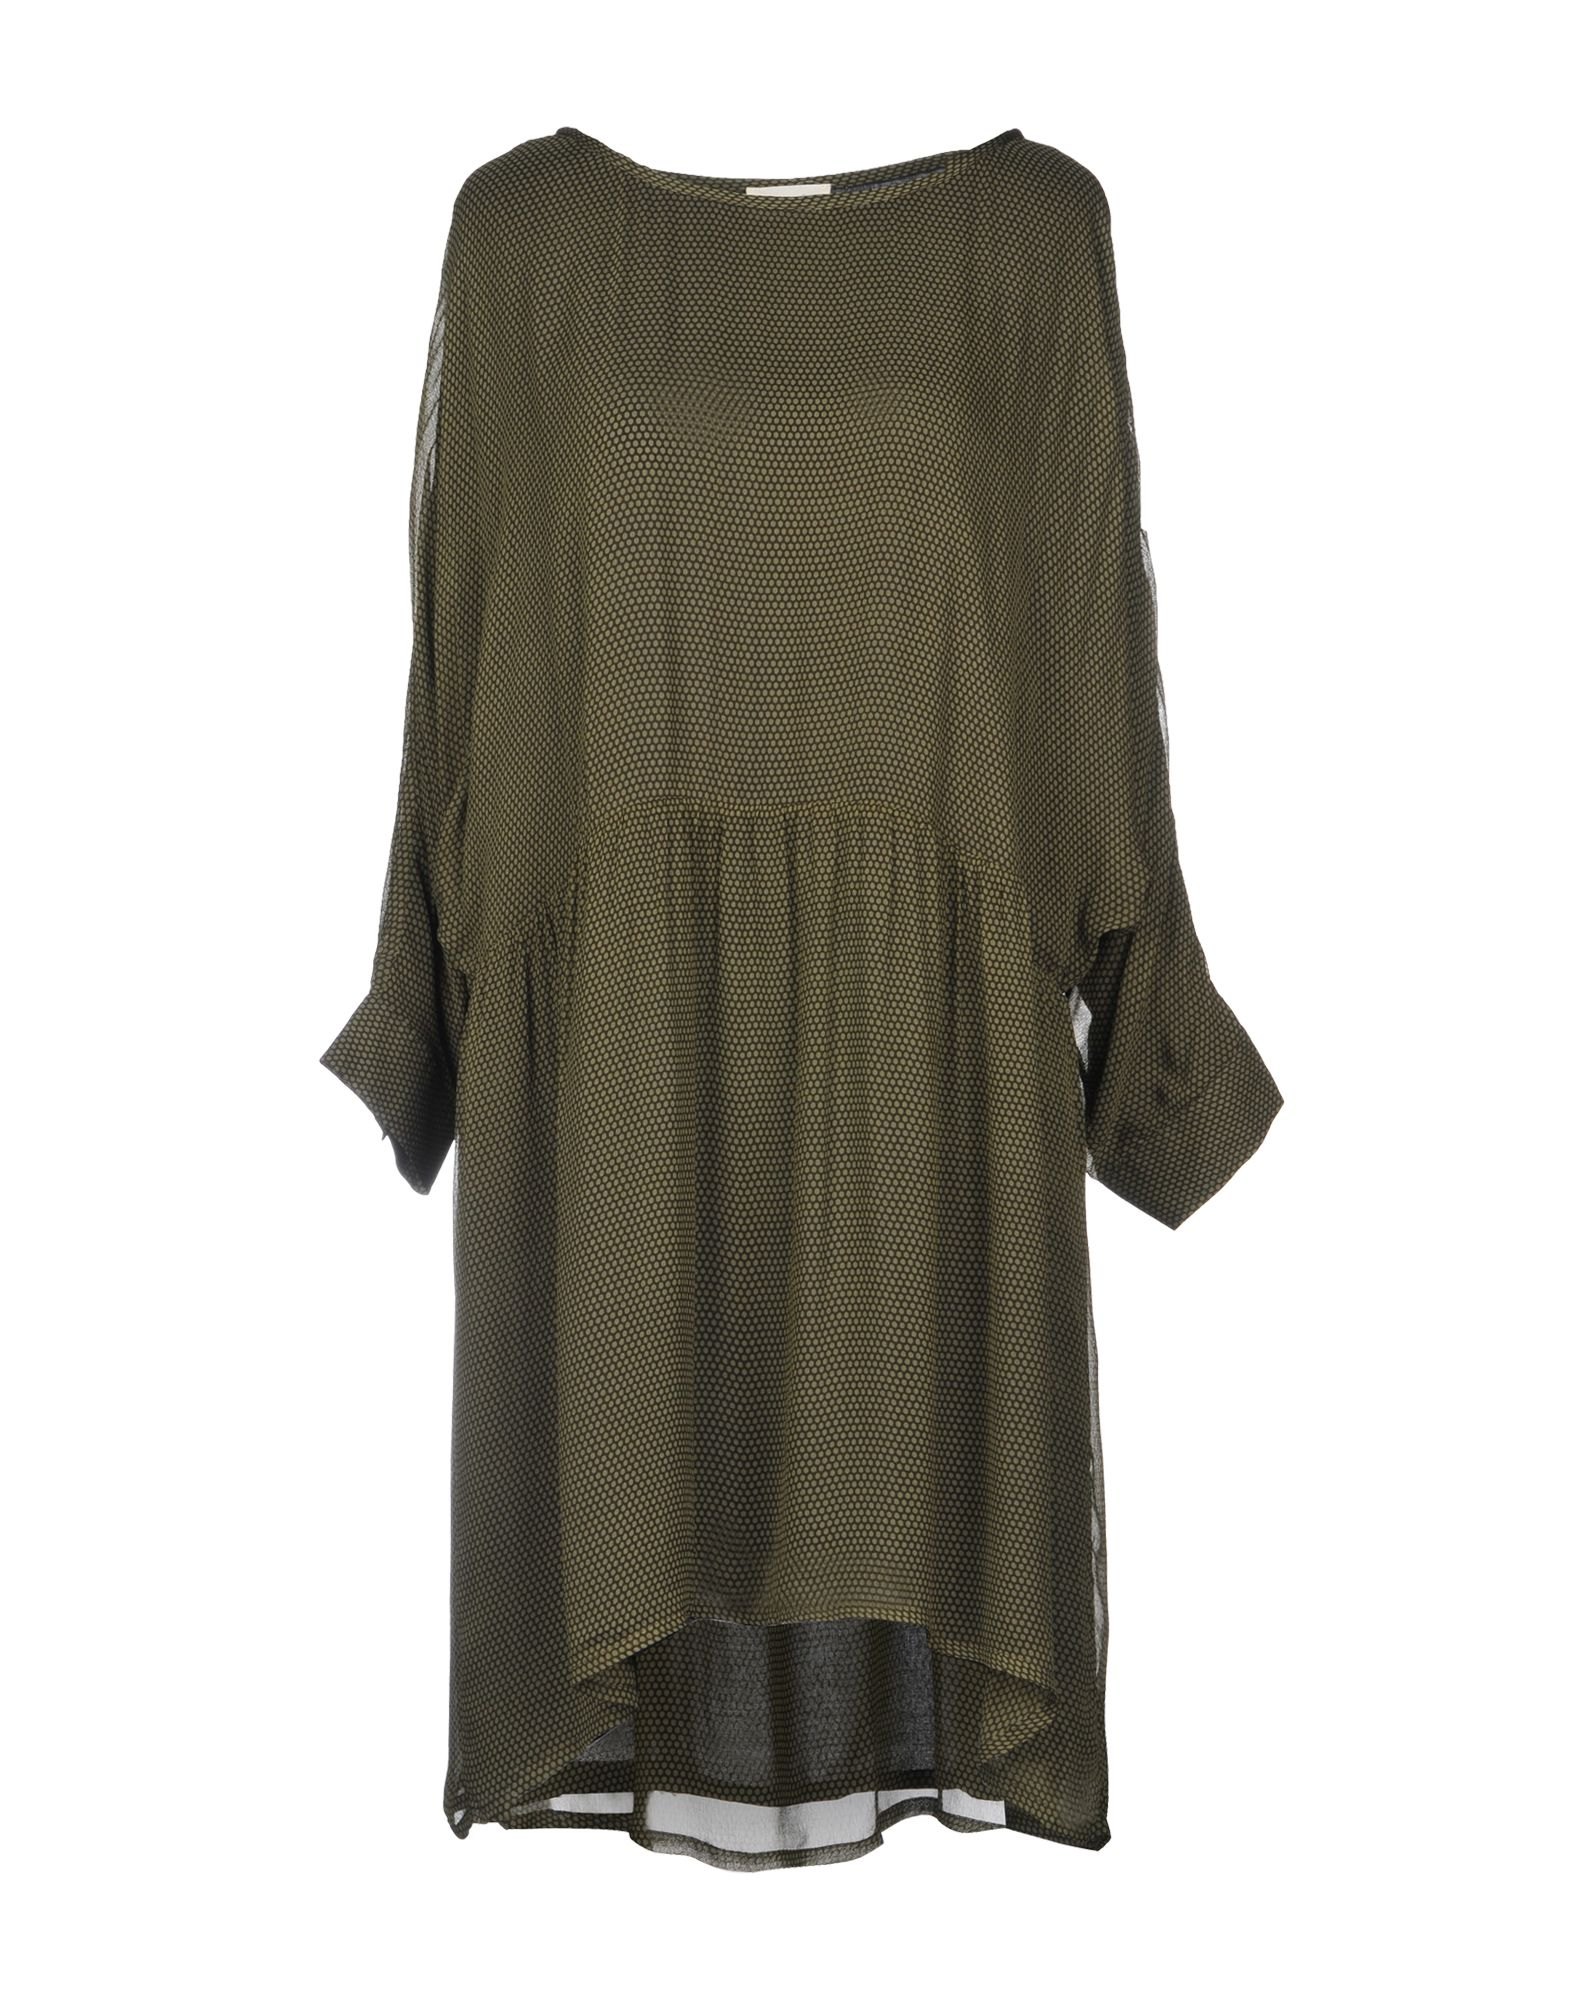 AMERICAN VINTAGE Short Dress in Military Green